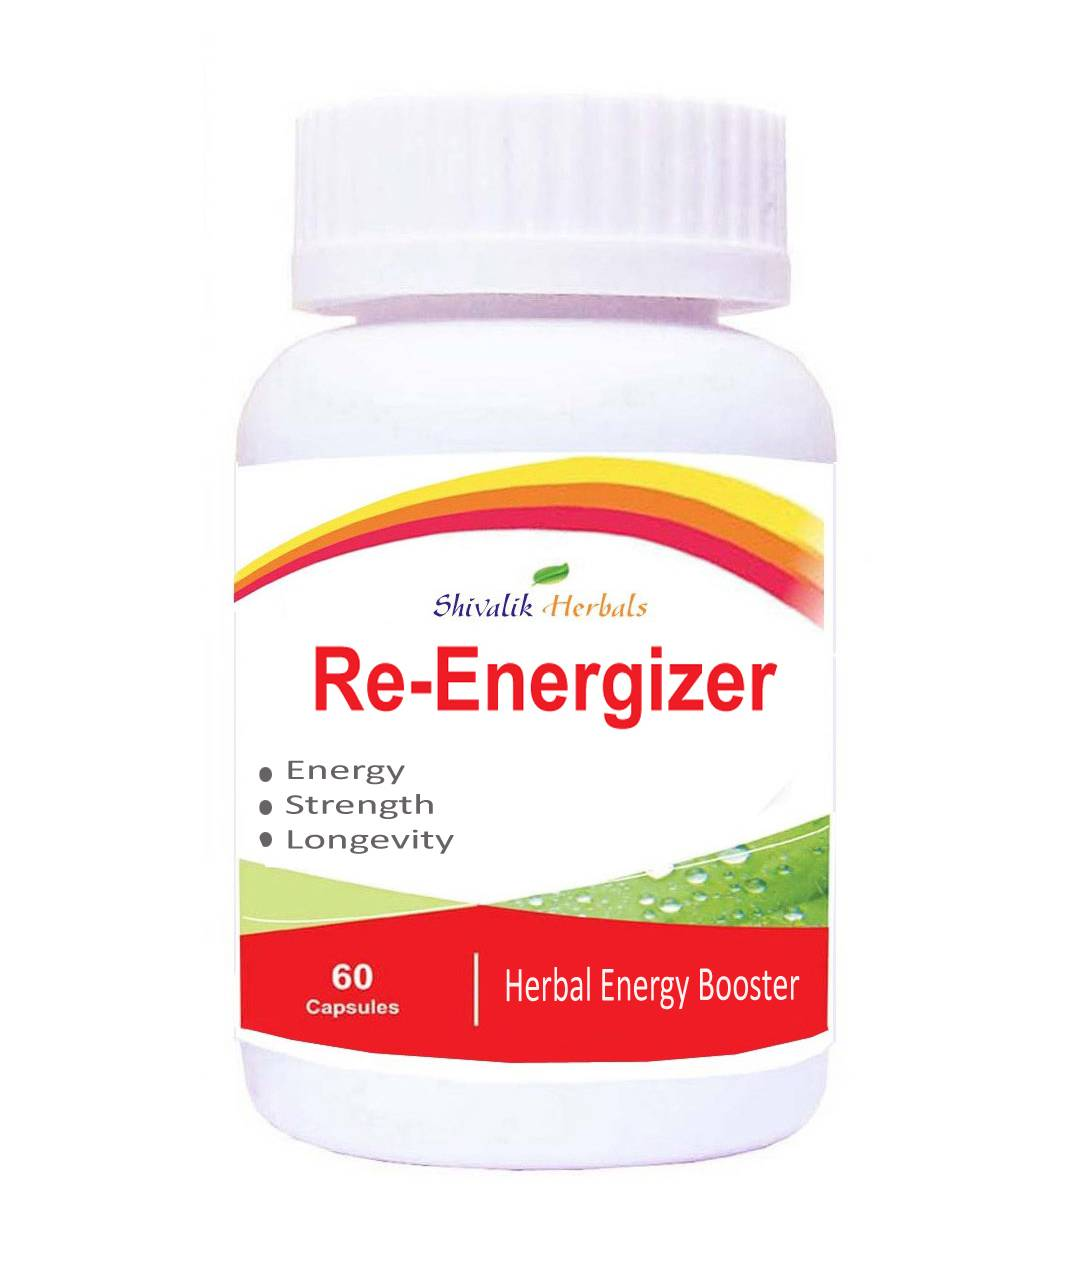 Re-energiizer-Herbal Tonic For the Complete Family